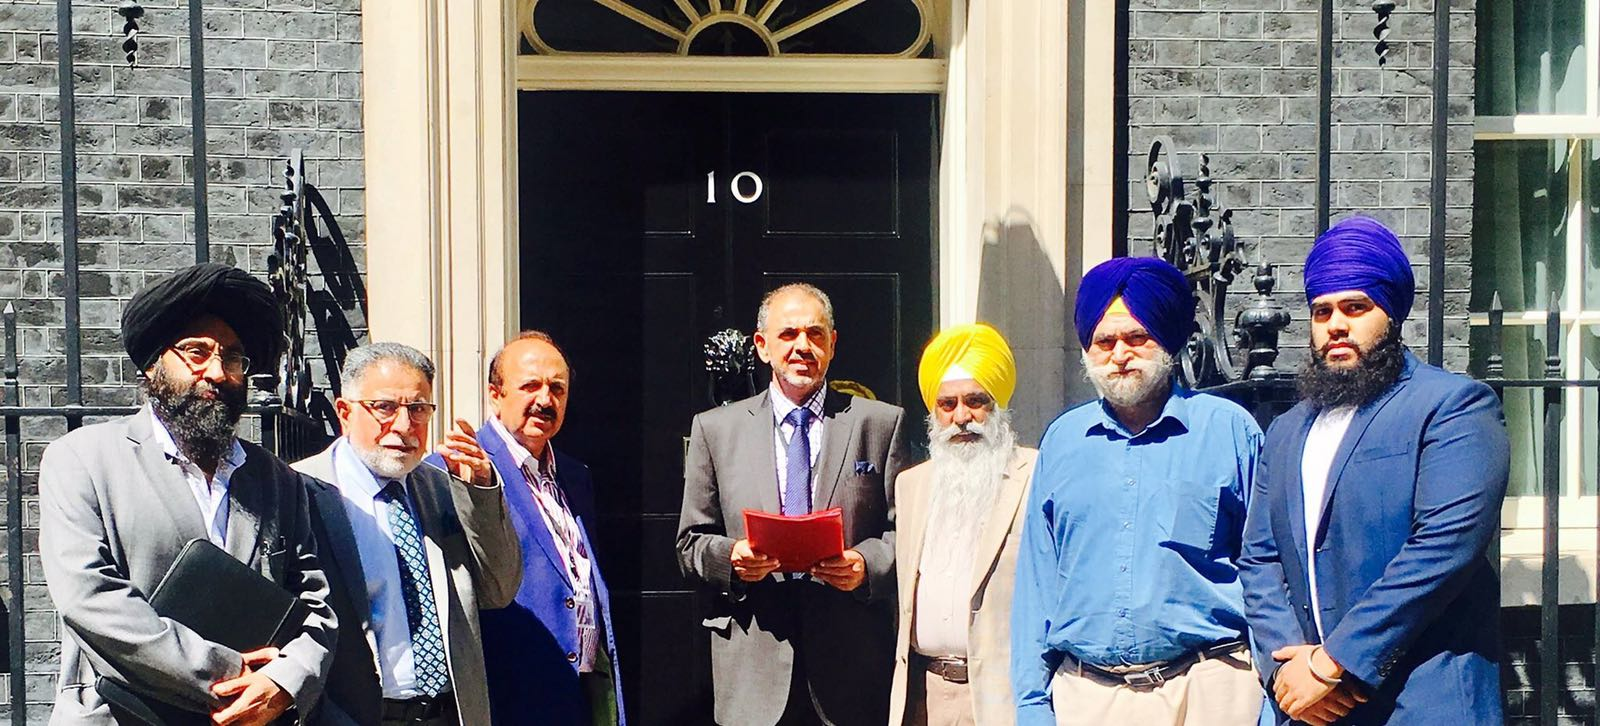 Uk muslims press for peace at 10 downing street - On 20 June 2017 A Delegation Of Sikhs And Kashmiris Delivered A Memorandum To The Uk Prime Minister Rt Honourable Theresa May At 10 Downing Street